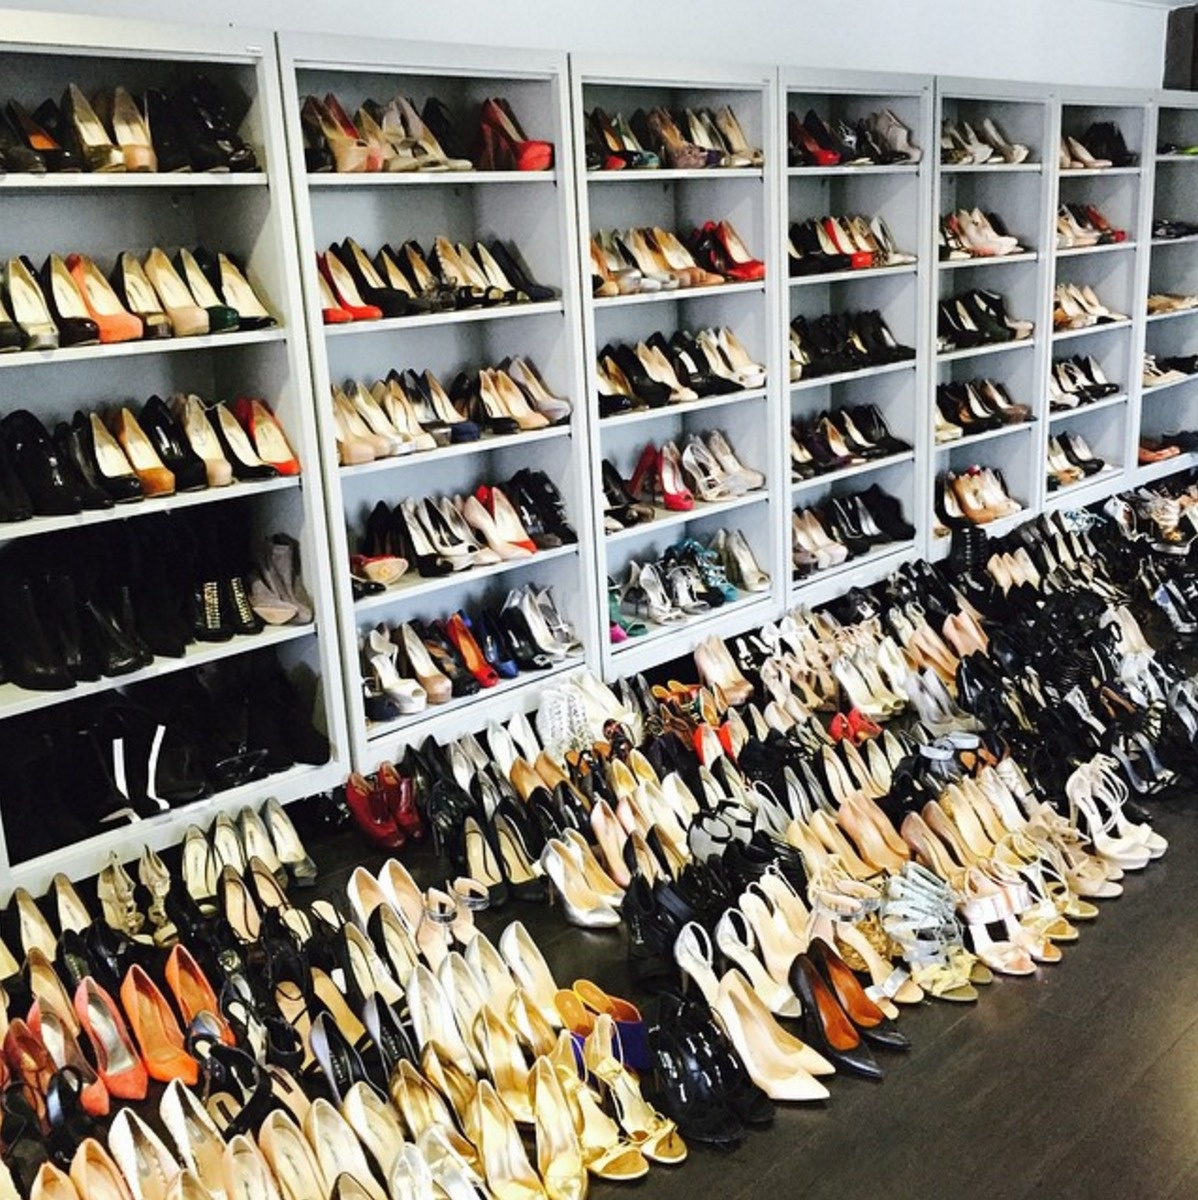 Rachel Zoe loves her shoes, and her closet is a shoe-lover's ultimate fantasy.